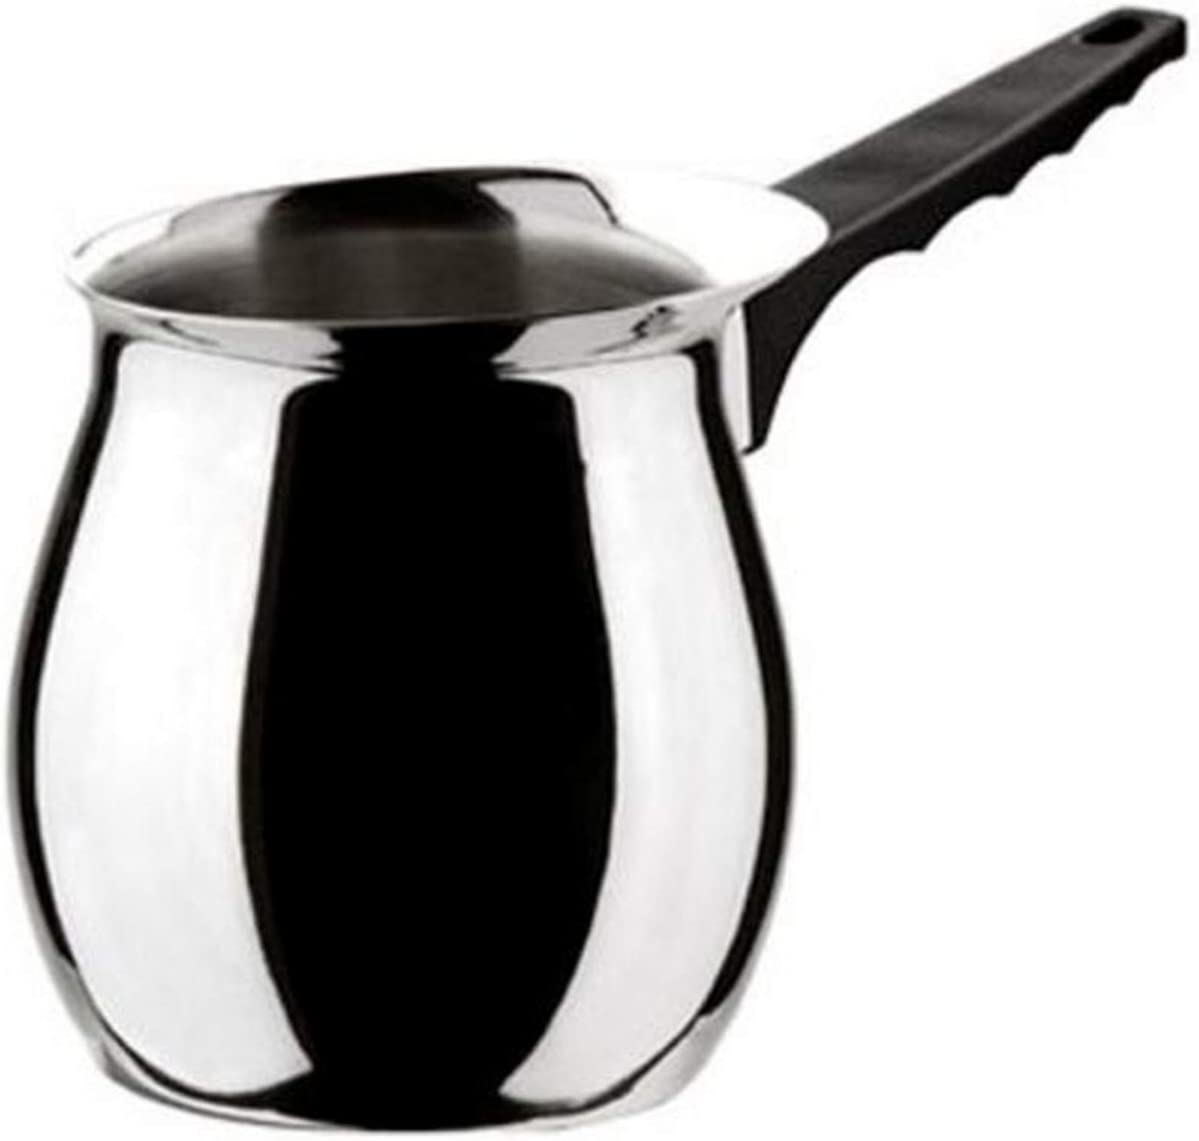 MIU France Polished Stainless Steel Milk Warmer 20-Ounces 3340